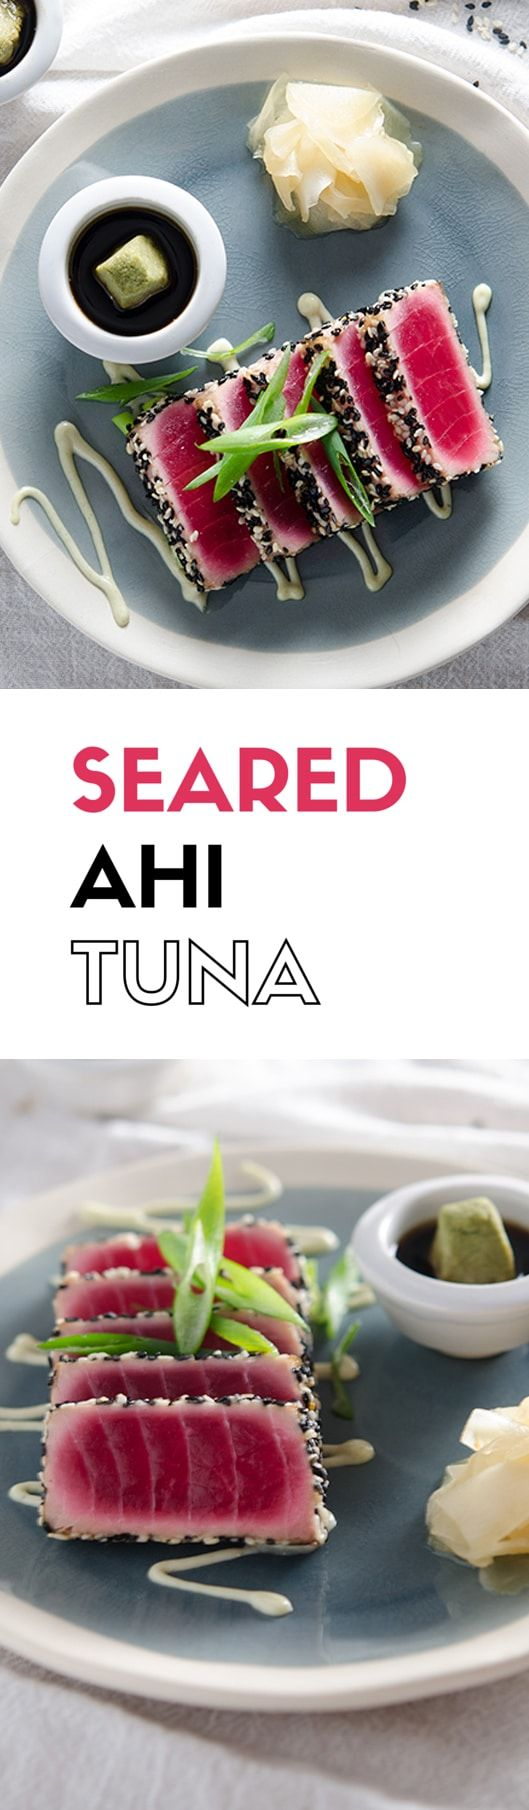 The perfect seared ahi tuna recipe with crunchy sesame crust, a delightfully playful wasabi mayo and a mirin ginger dipping sauce.